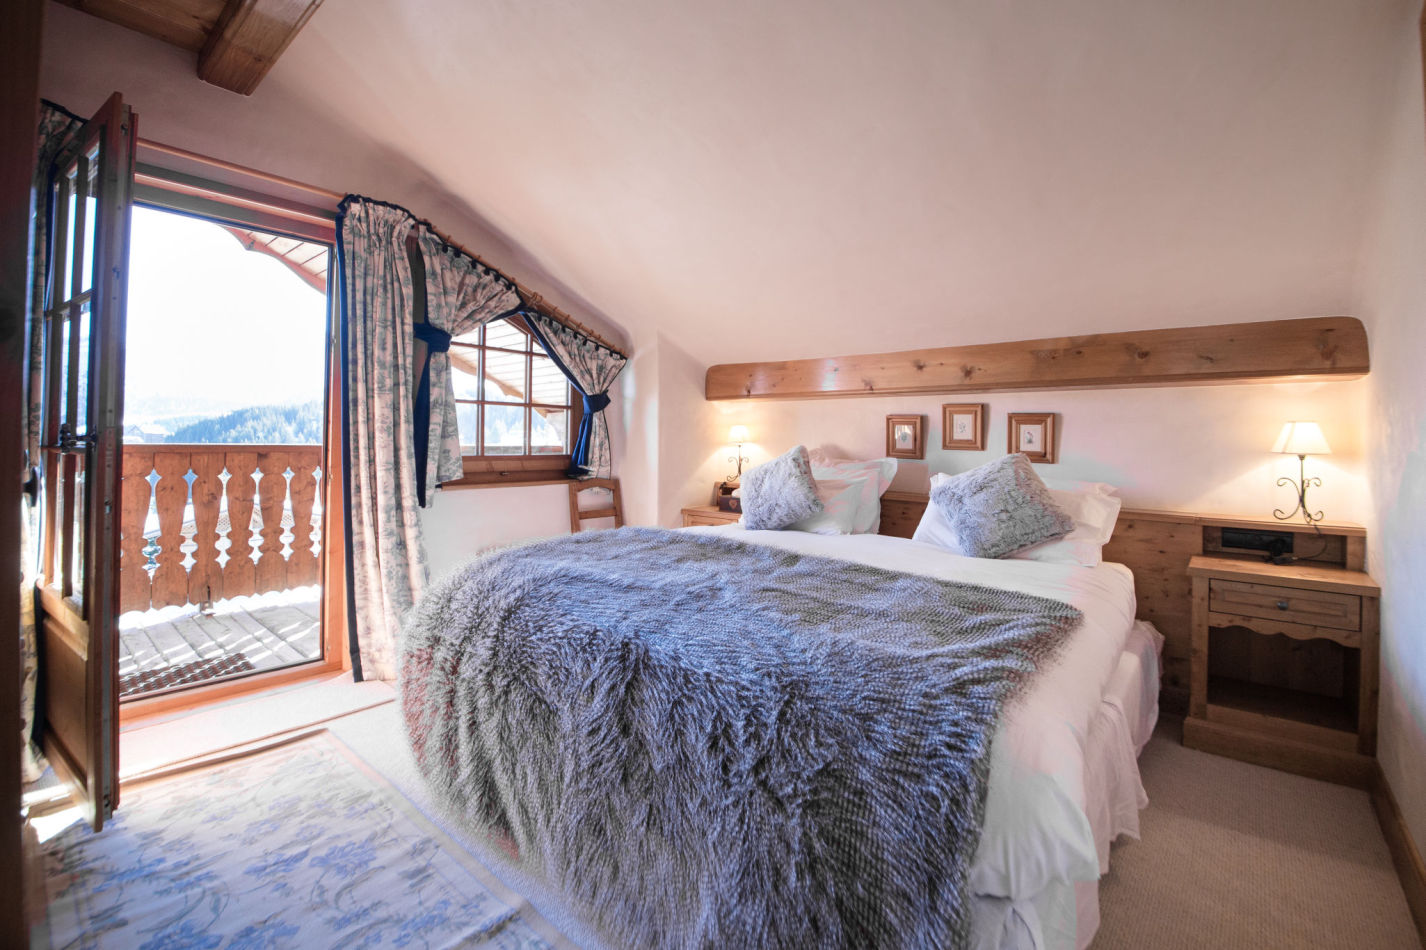 chalet-maisonnee-a-bedroom-image-1